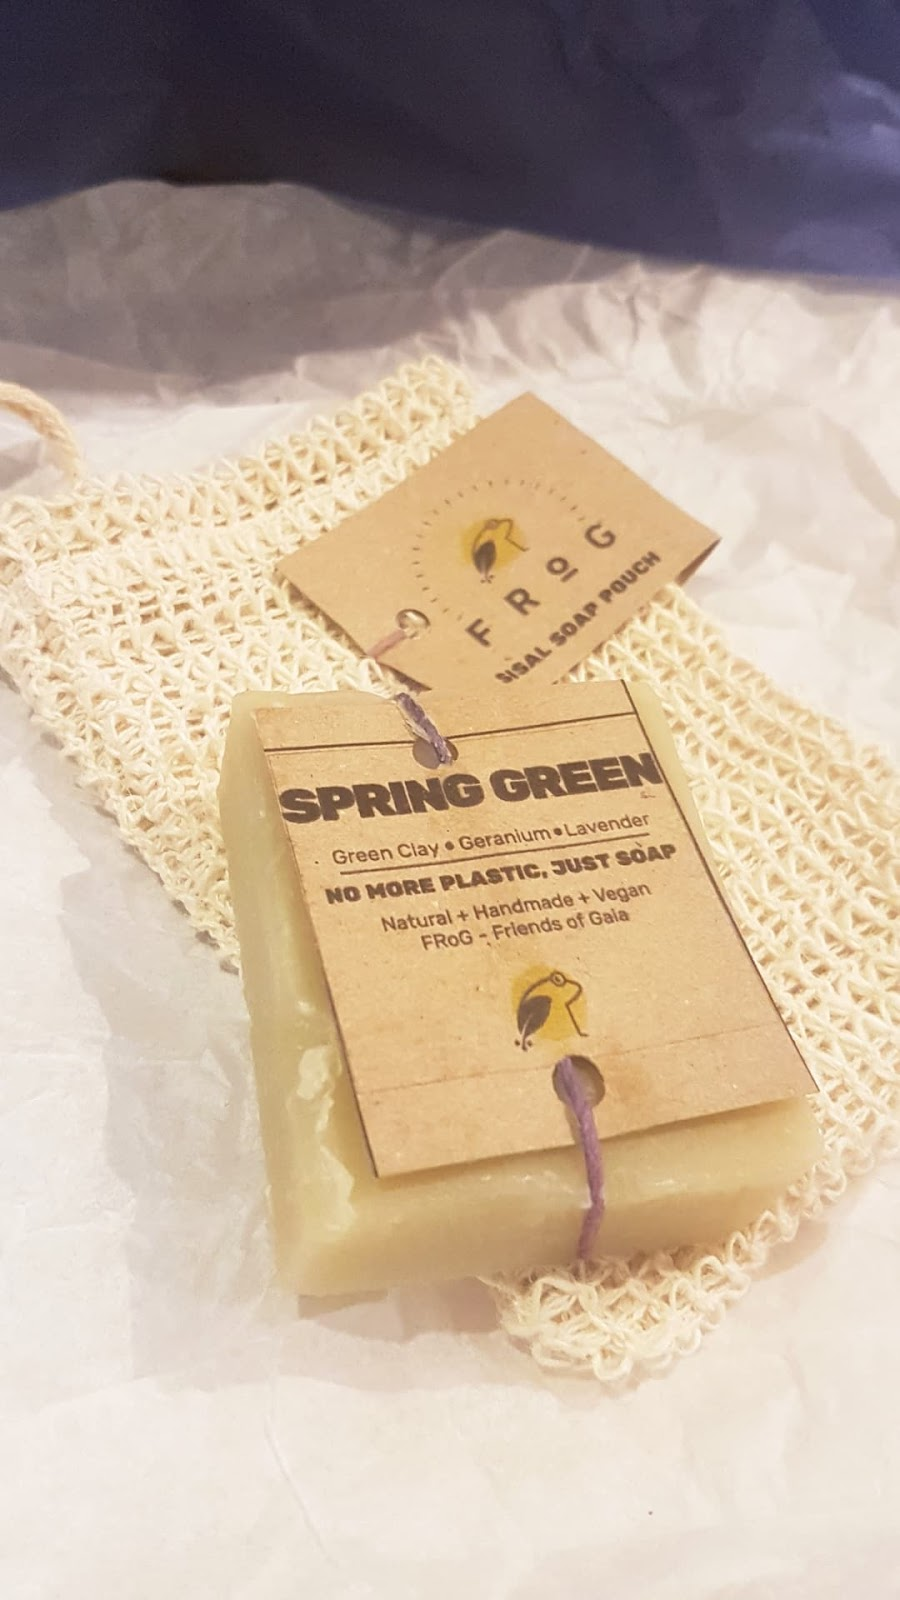 Friends of Gaia soap Review - The Natural Beauty Box